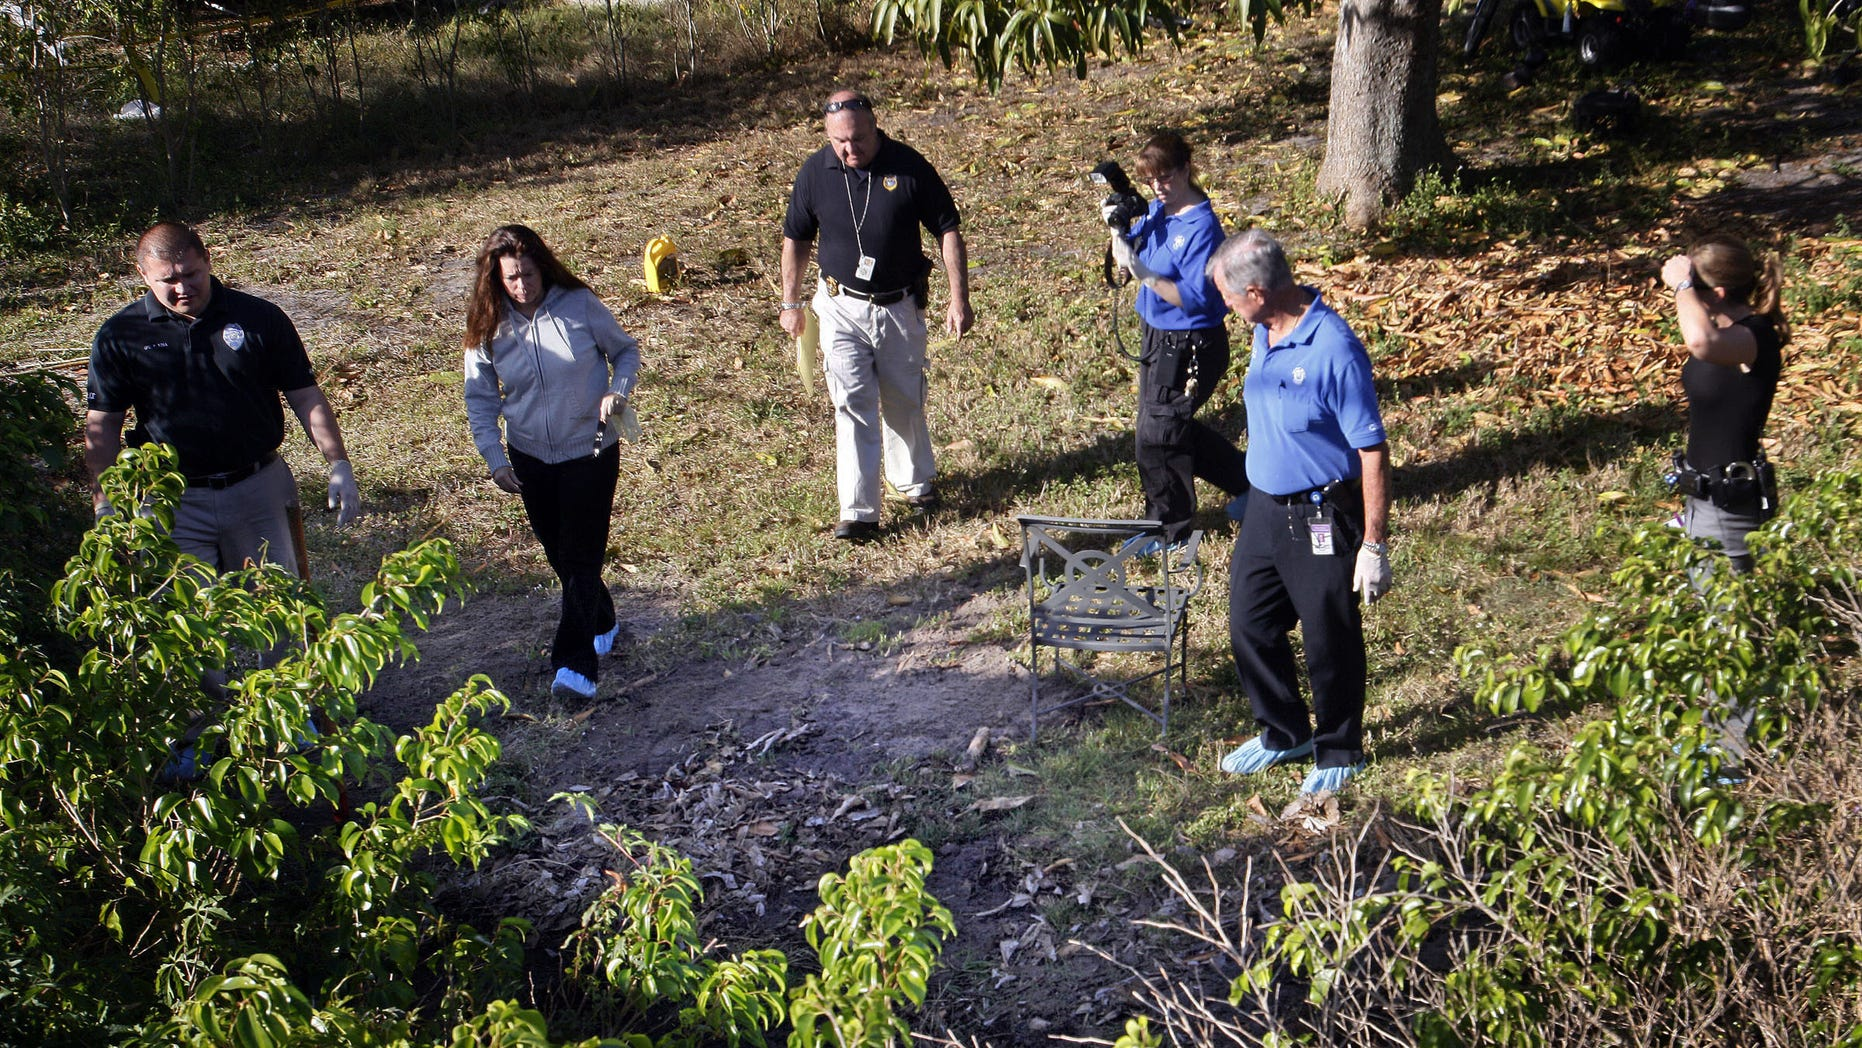 March 4: Delray Beach investigators gather in the backyard of the home of Clem Beauchamp in Delray Beach, Fla. Investigators were seen digging in a corner of Beauchamp's yard after he became a suspect in the death of his two children, found in a canal, and their mother, found in a landfill.